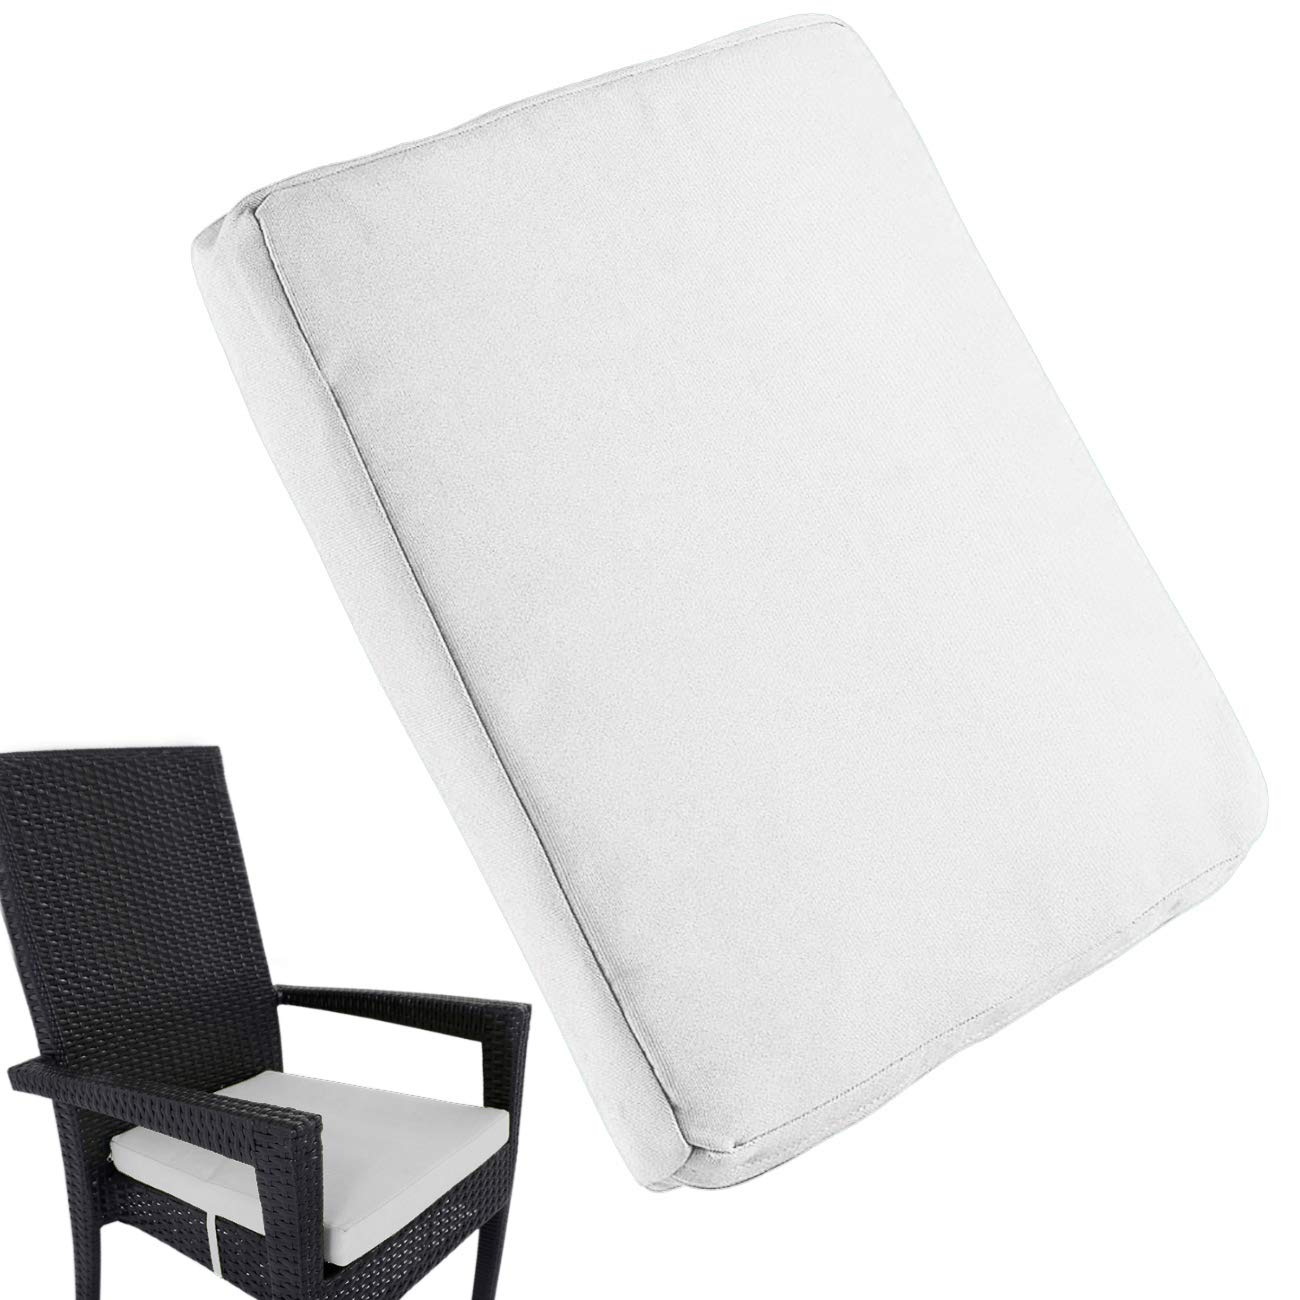 Uheng 4 Pack Patio Outdoor Chair Cushions with Ties, Seat Pads Mat, Waterproof Removable Cover, Comfort Memory Foam Nonslip for Garden Deck Picnic Beach Pool -18'' X 18''(White)